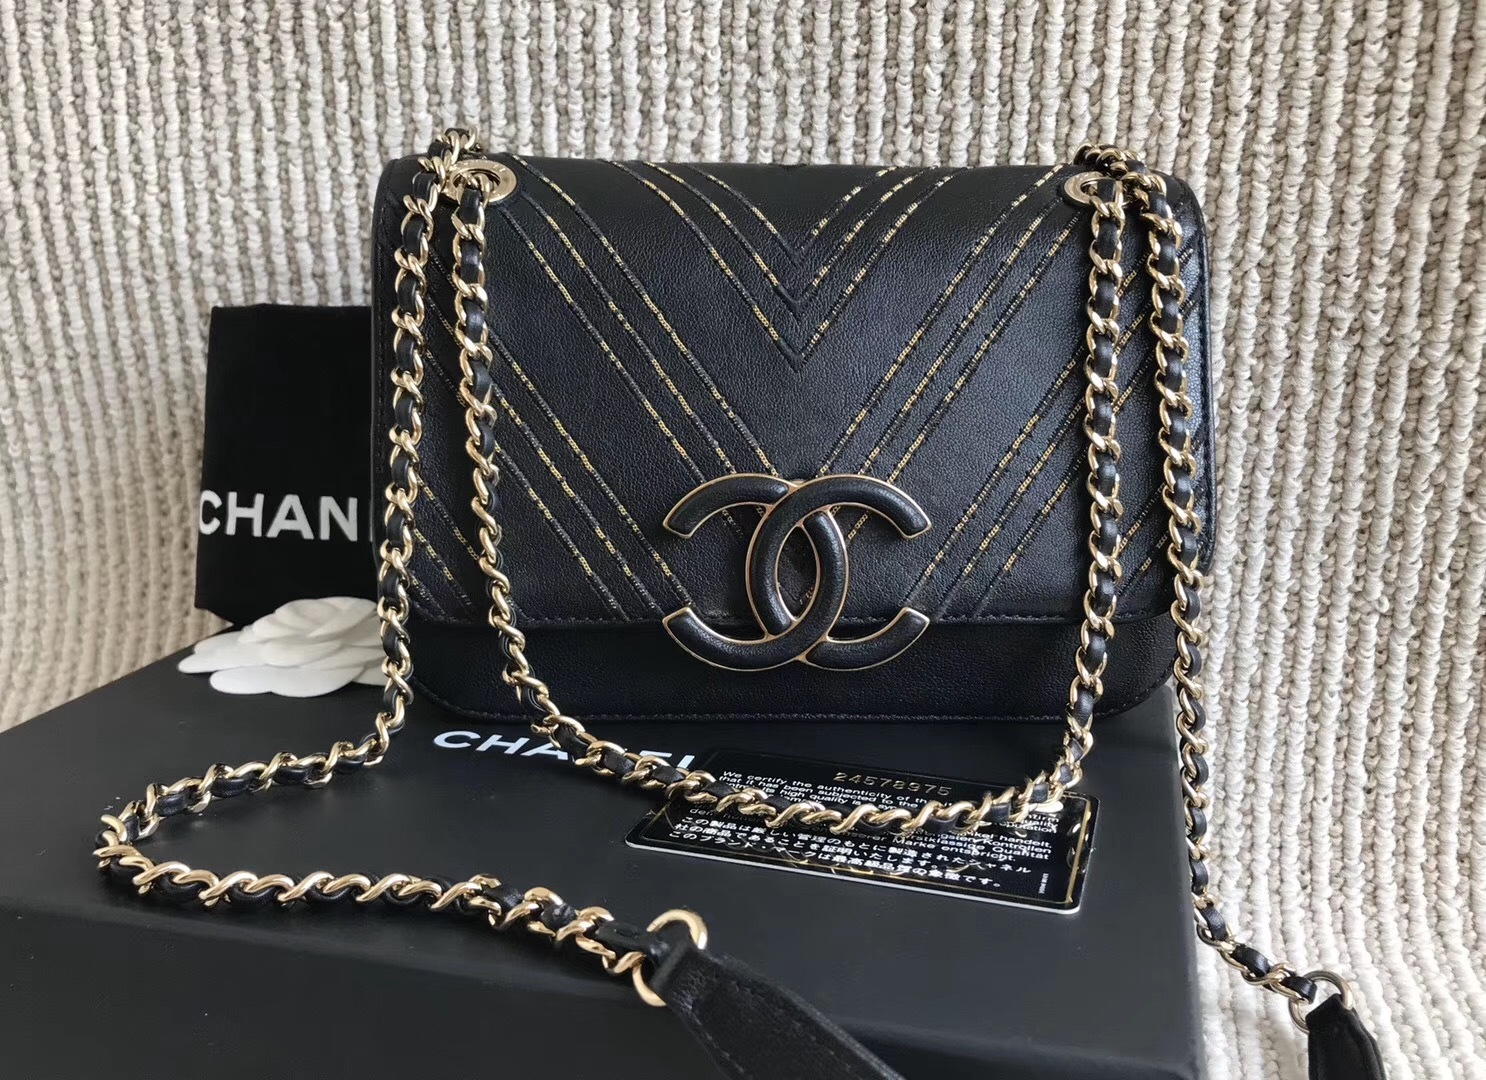 100% AUTH Chanel Black Leather Gold CHEVRON LIMITED EDITION Flap Bag